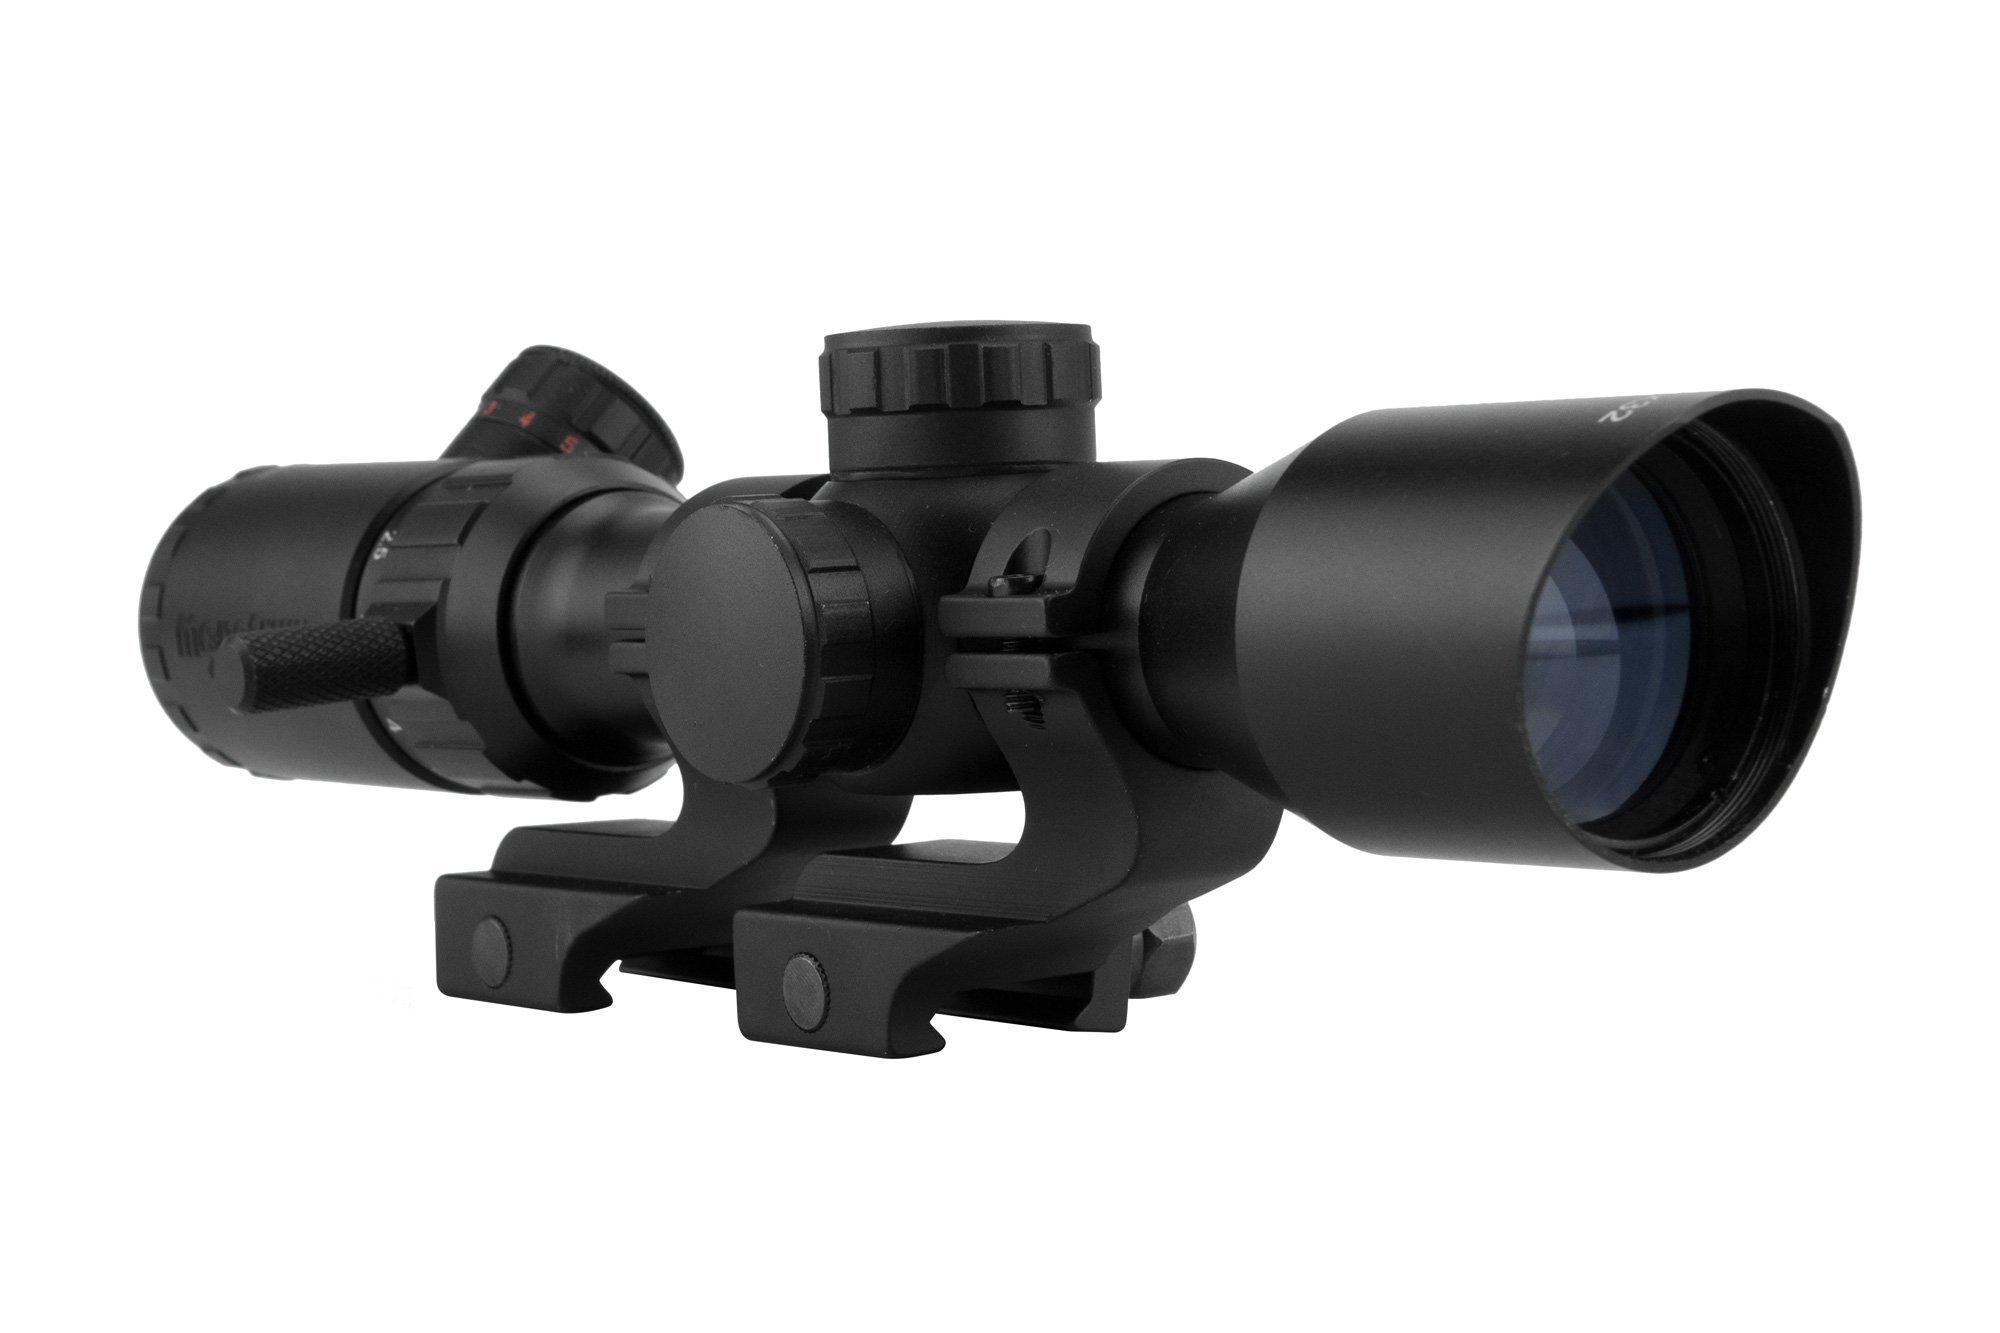 Monstrum Tactical 2-7x32 Rifle Scope with Rangefinder Reticle and Offset Reversible Scope Rings (Black/Black Rings)